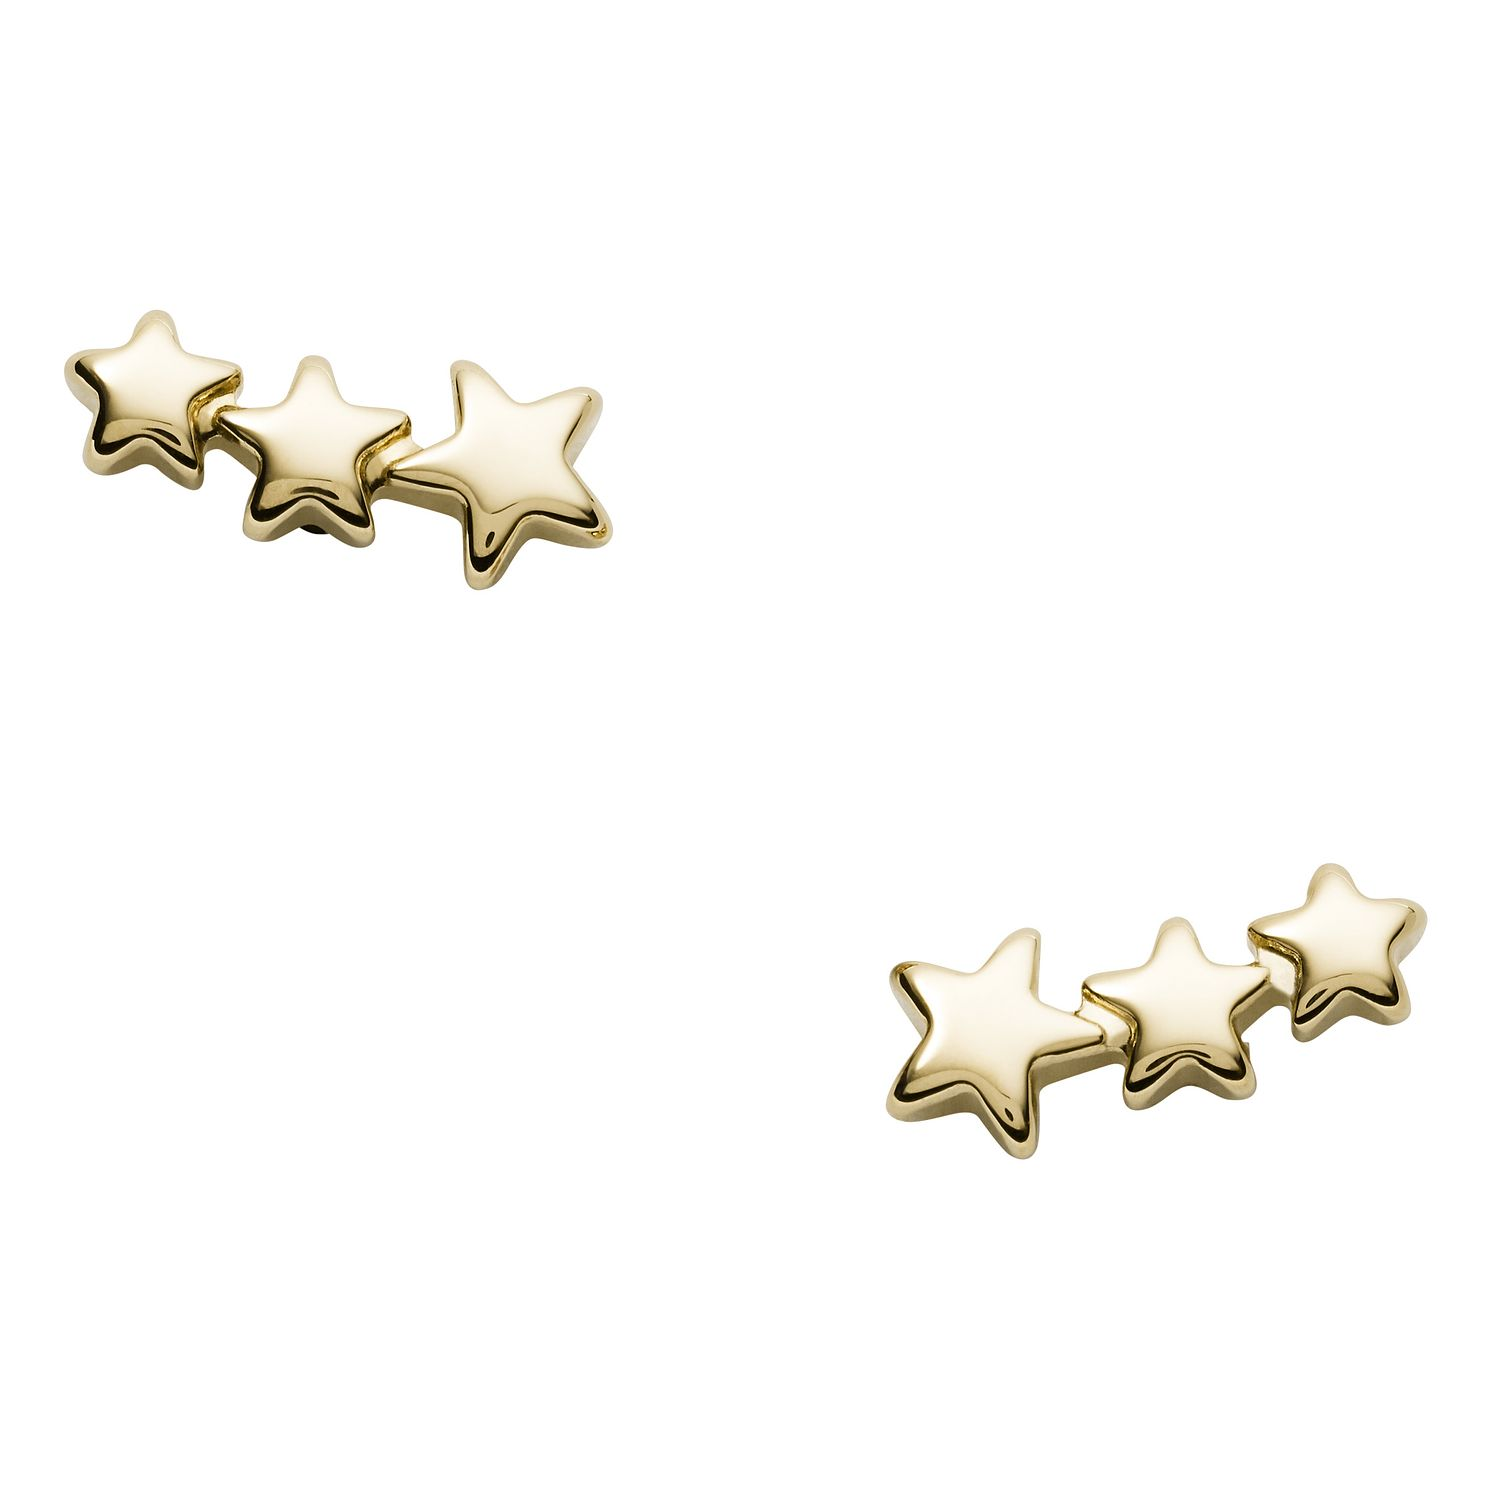 Fossil Vintage Motifs Ladies' Yellow Gold Tone Star Earrings - Product number 2358840